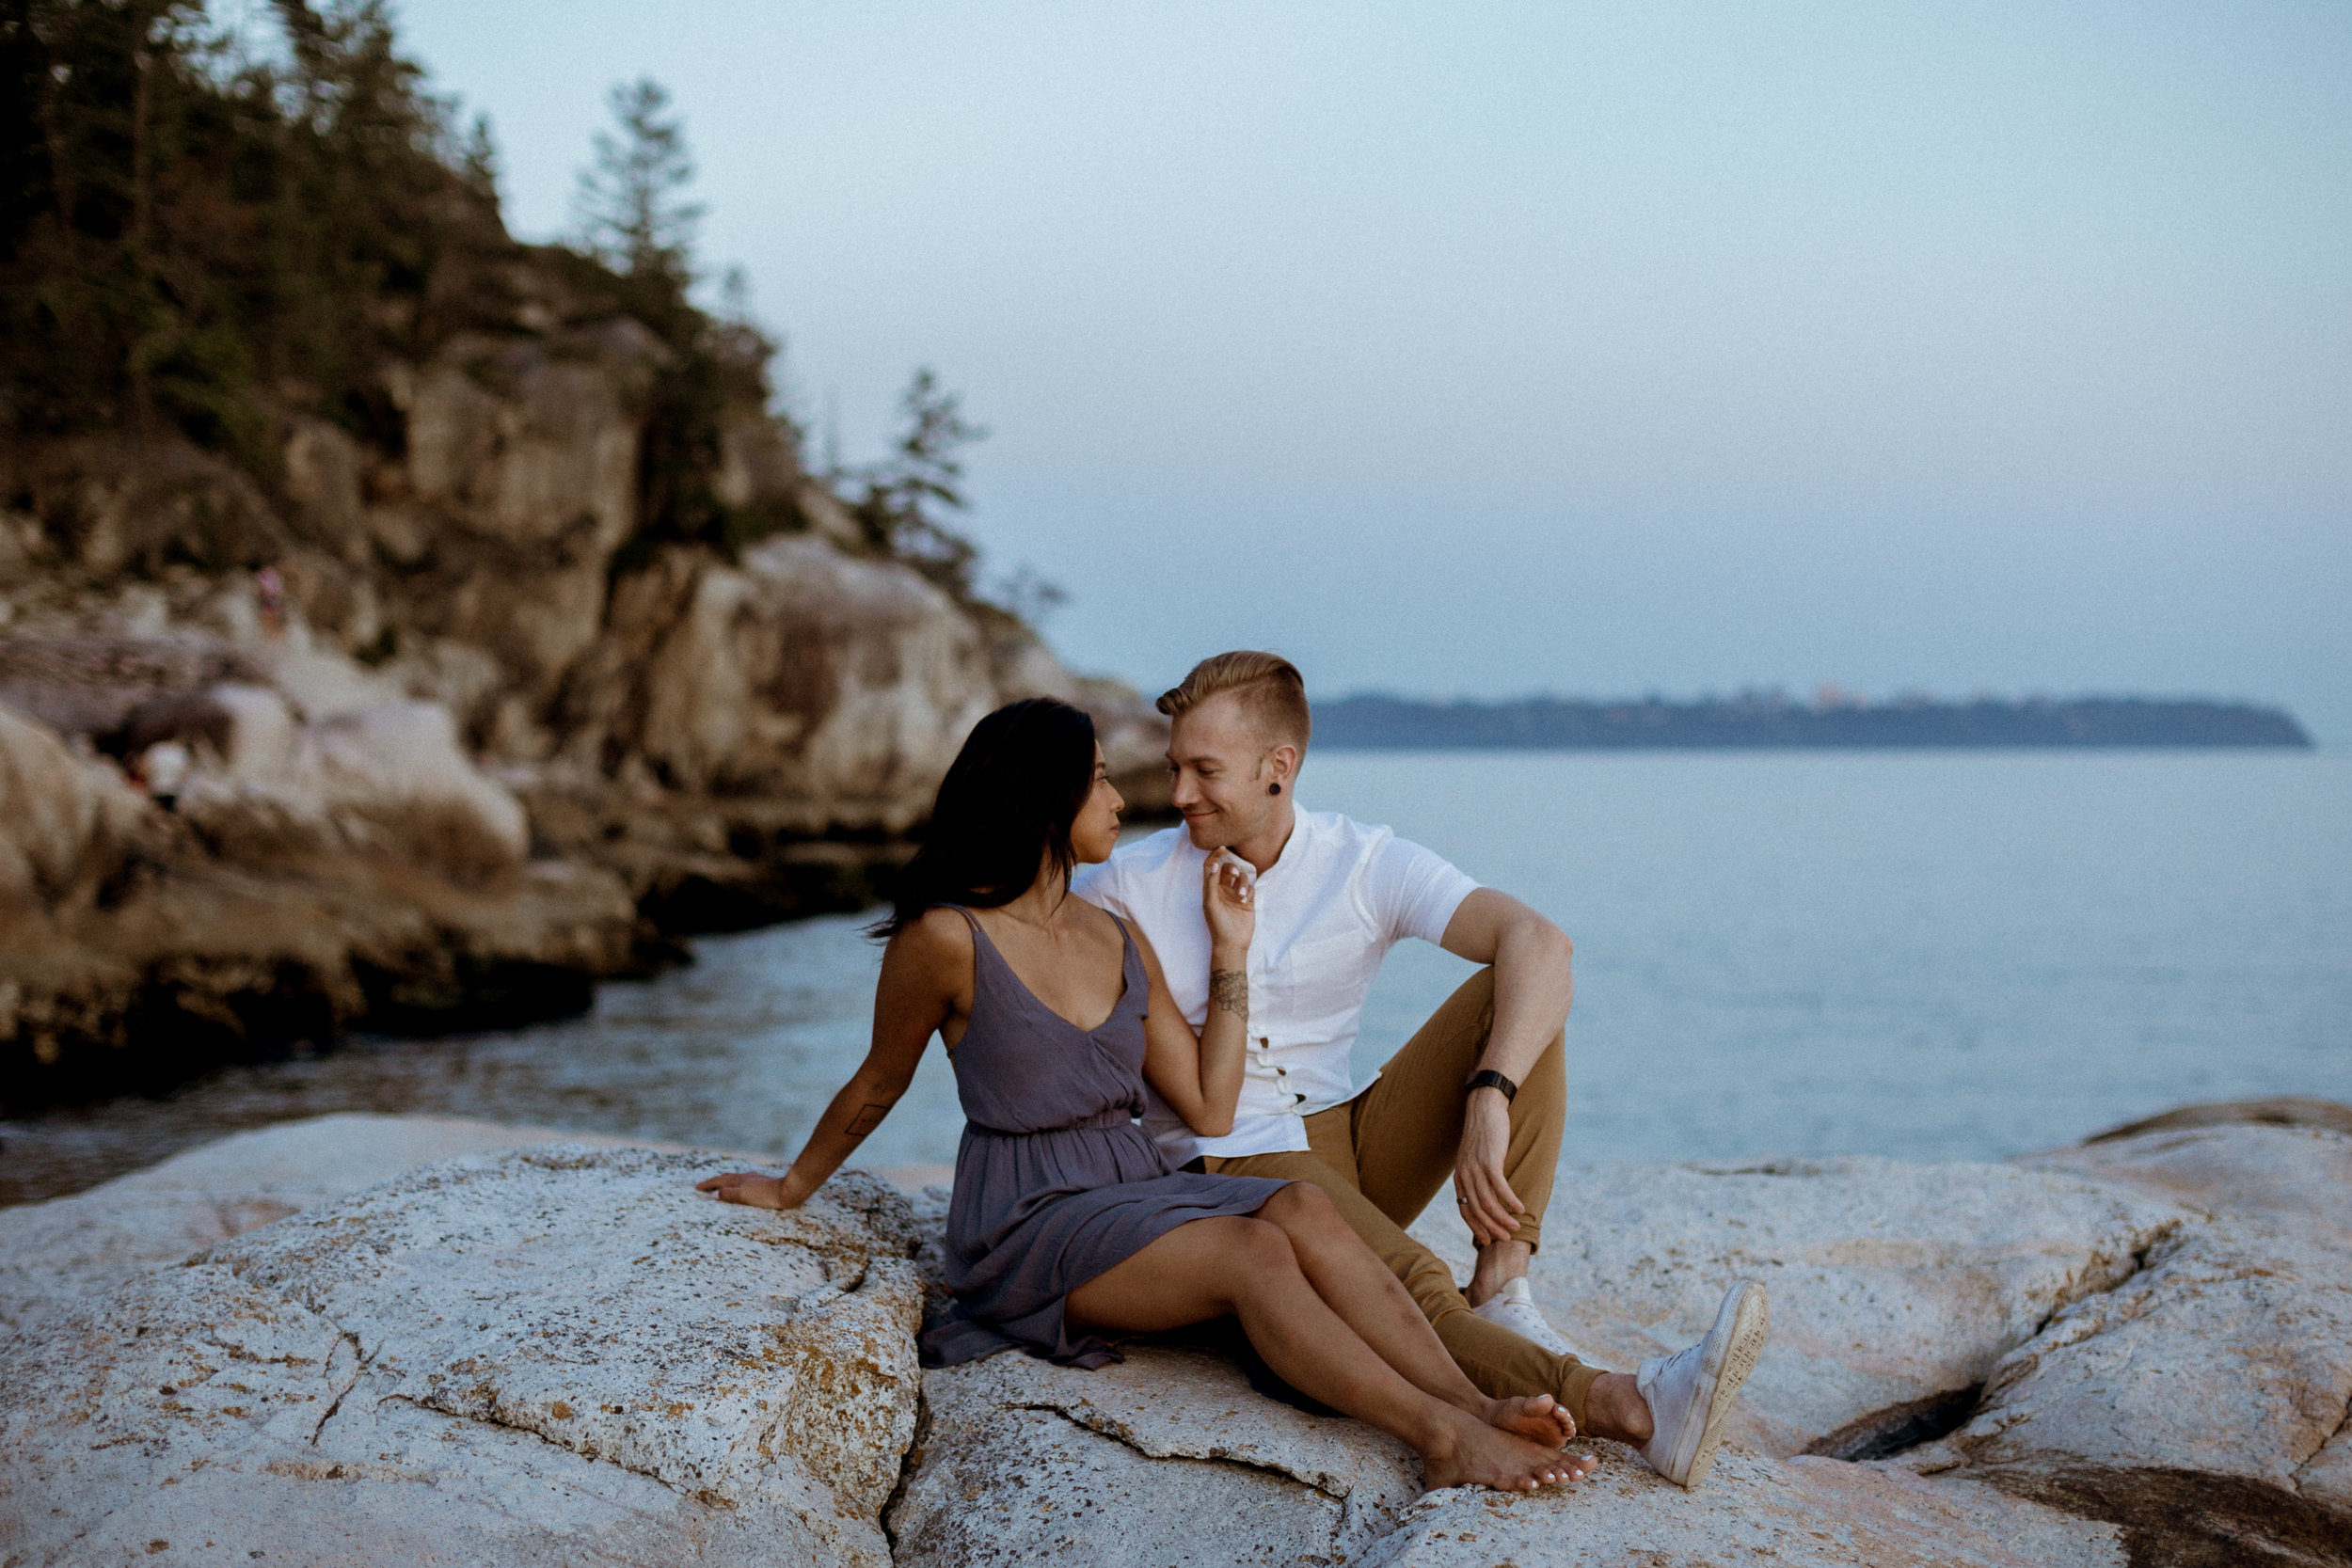 Lighthouse-Park-Engagement-Session-91.jpg